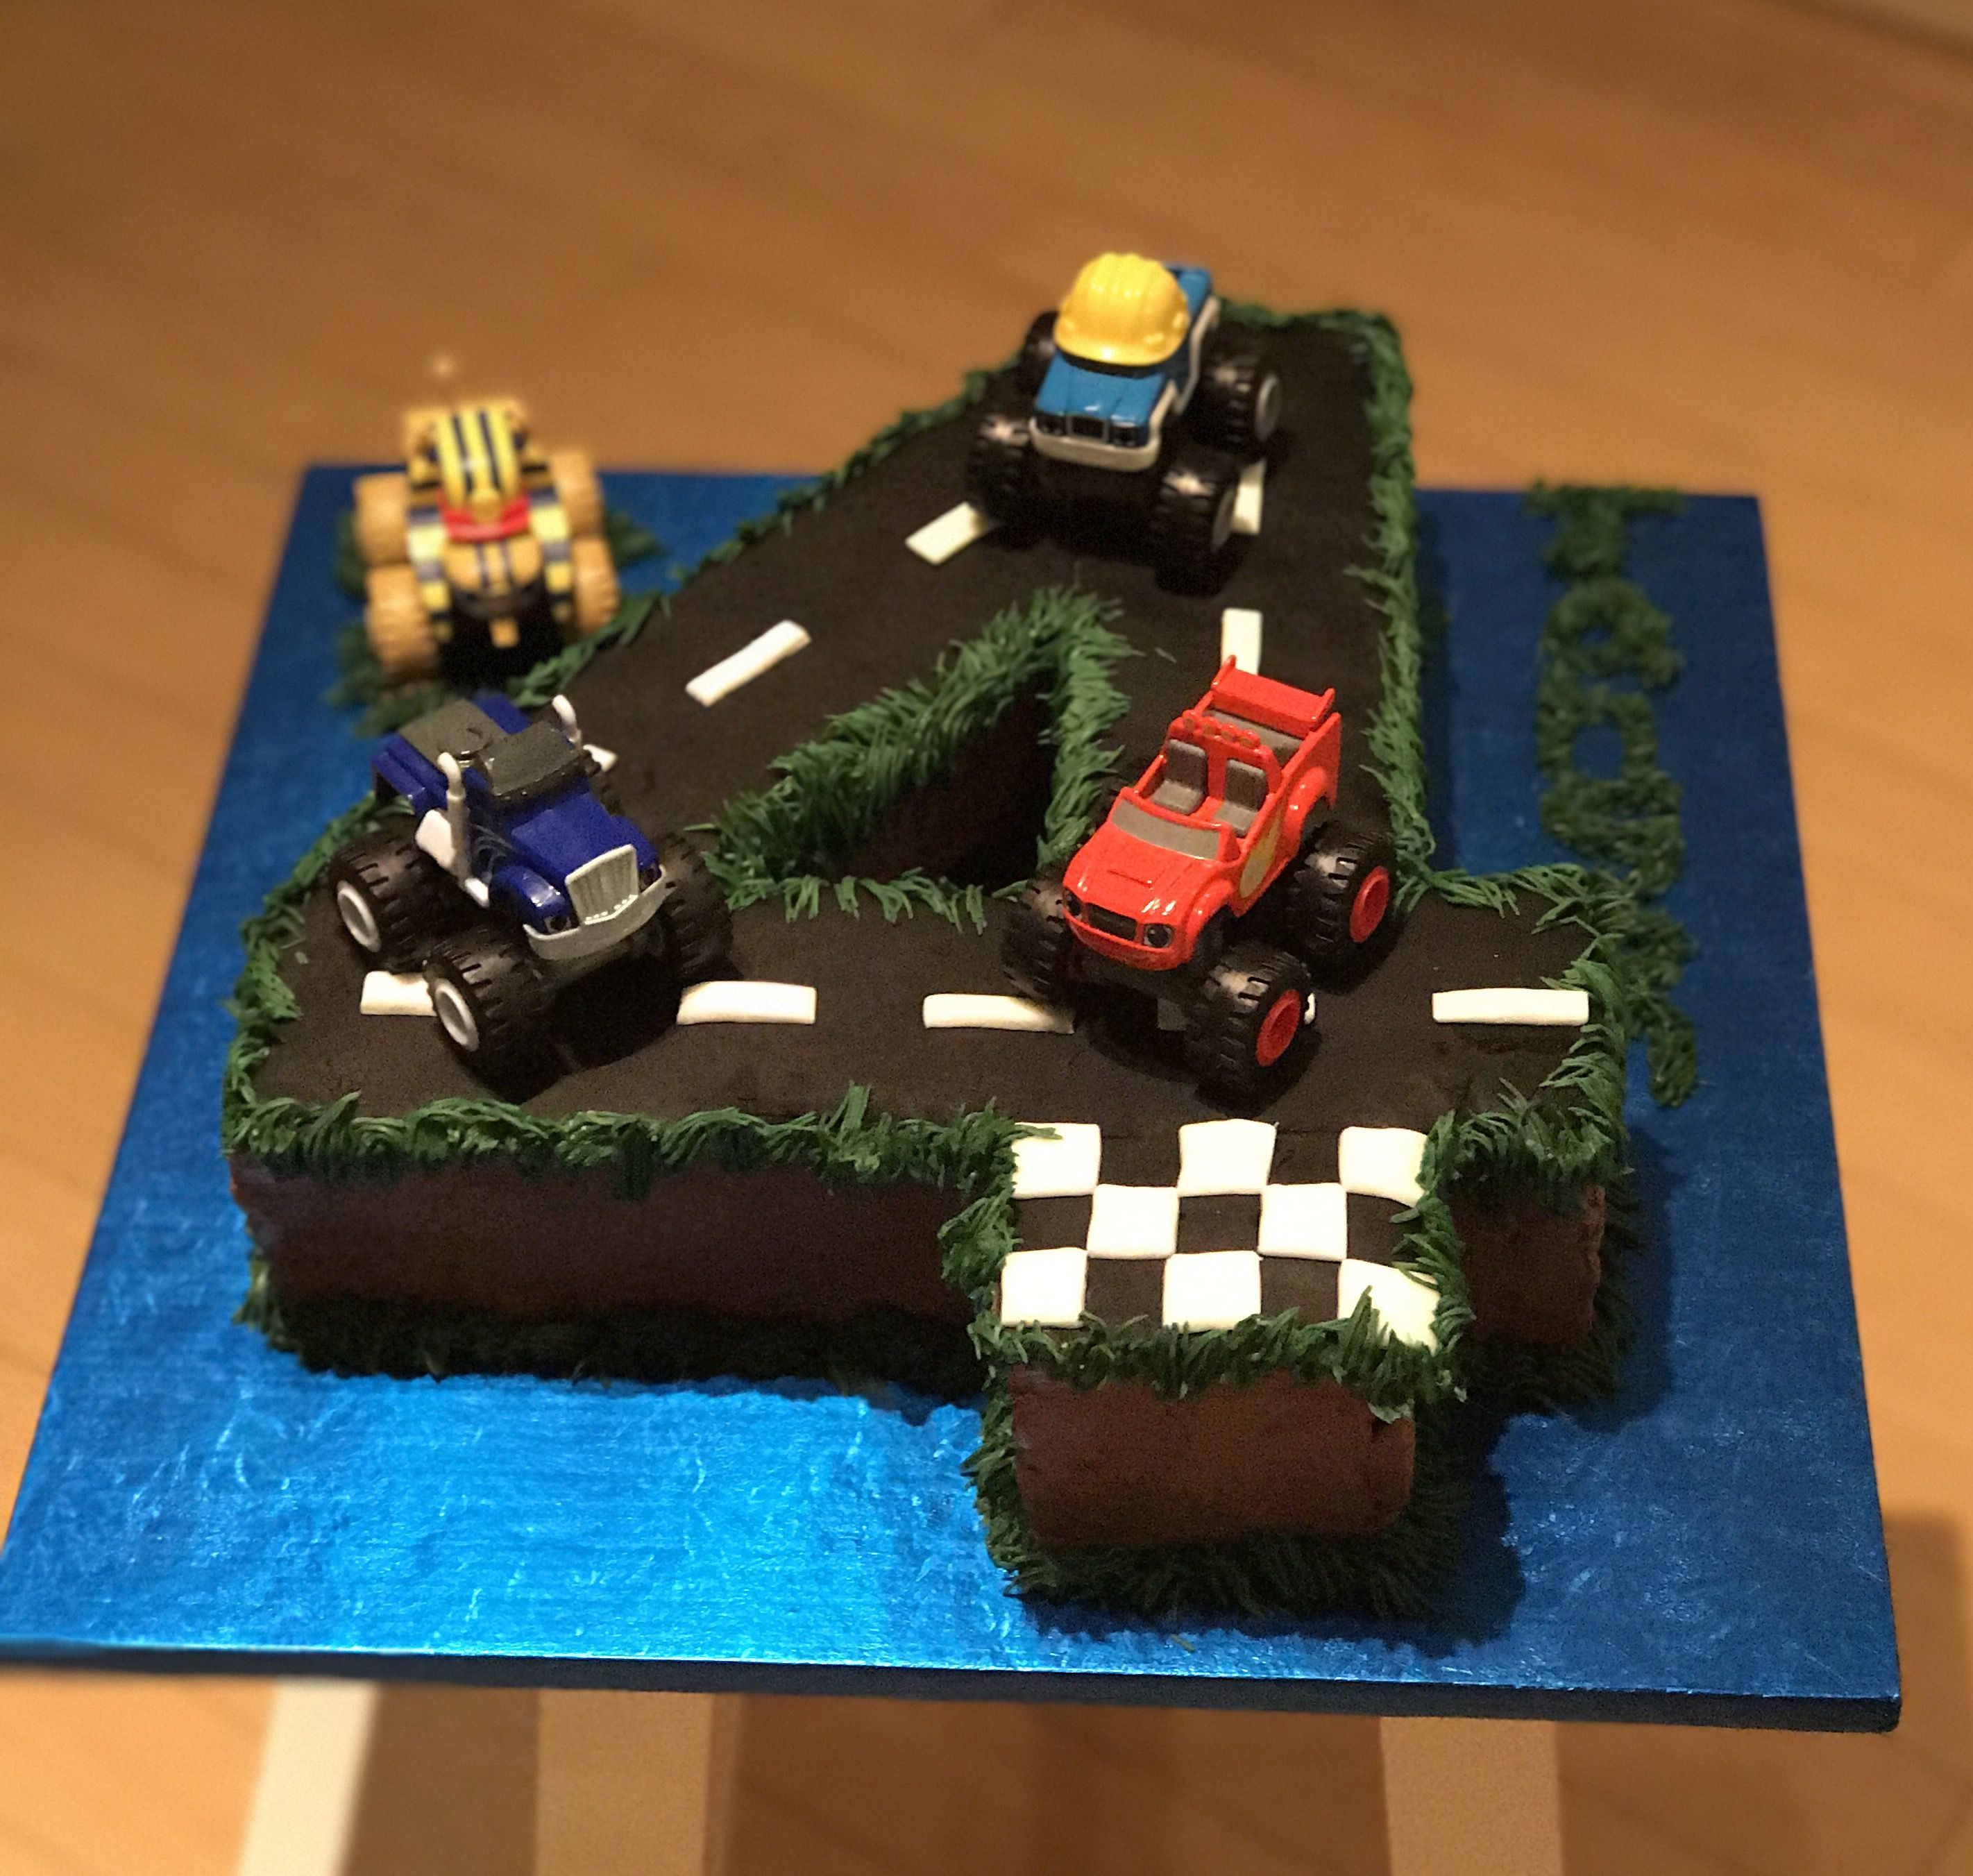 Blaze And The Monster Machines 4th Birthday Cake With Images